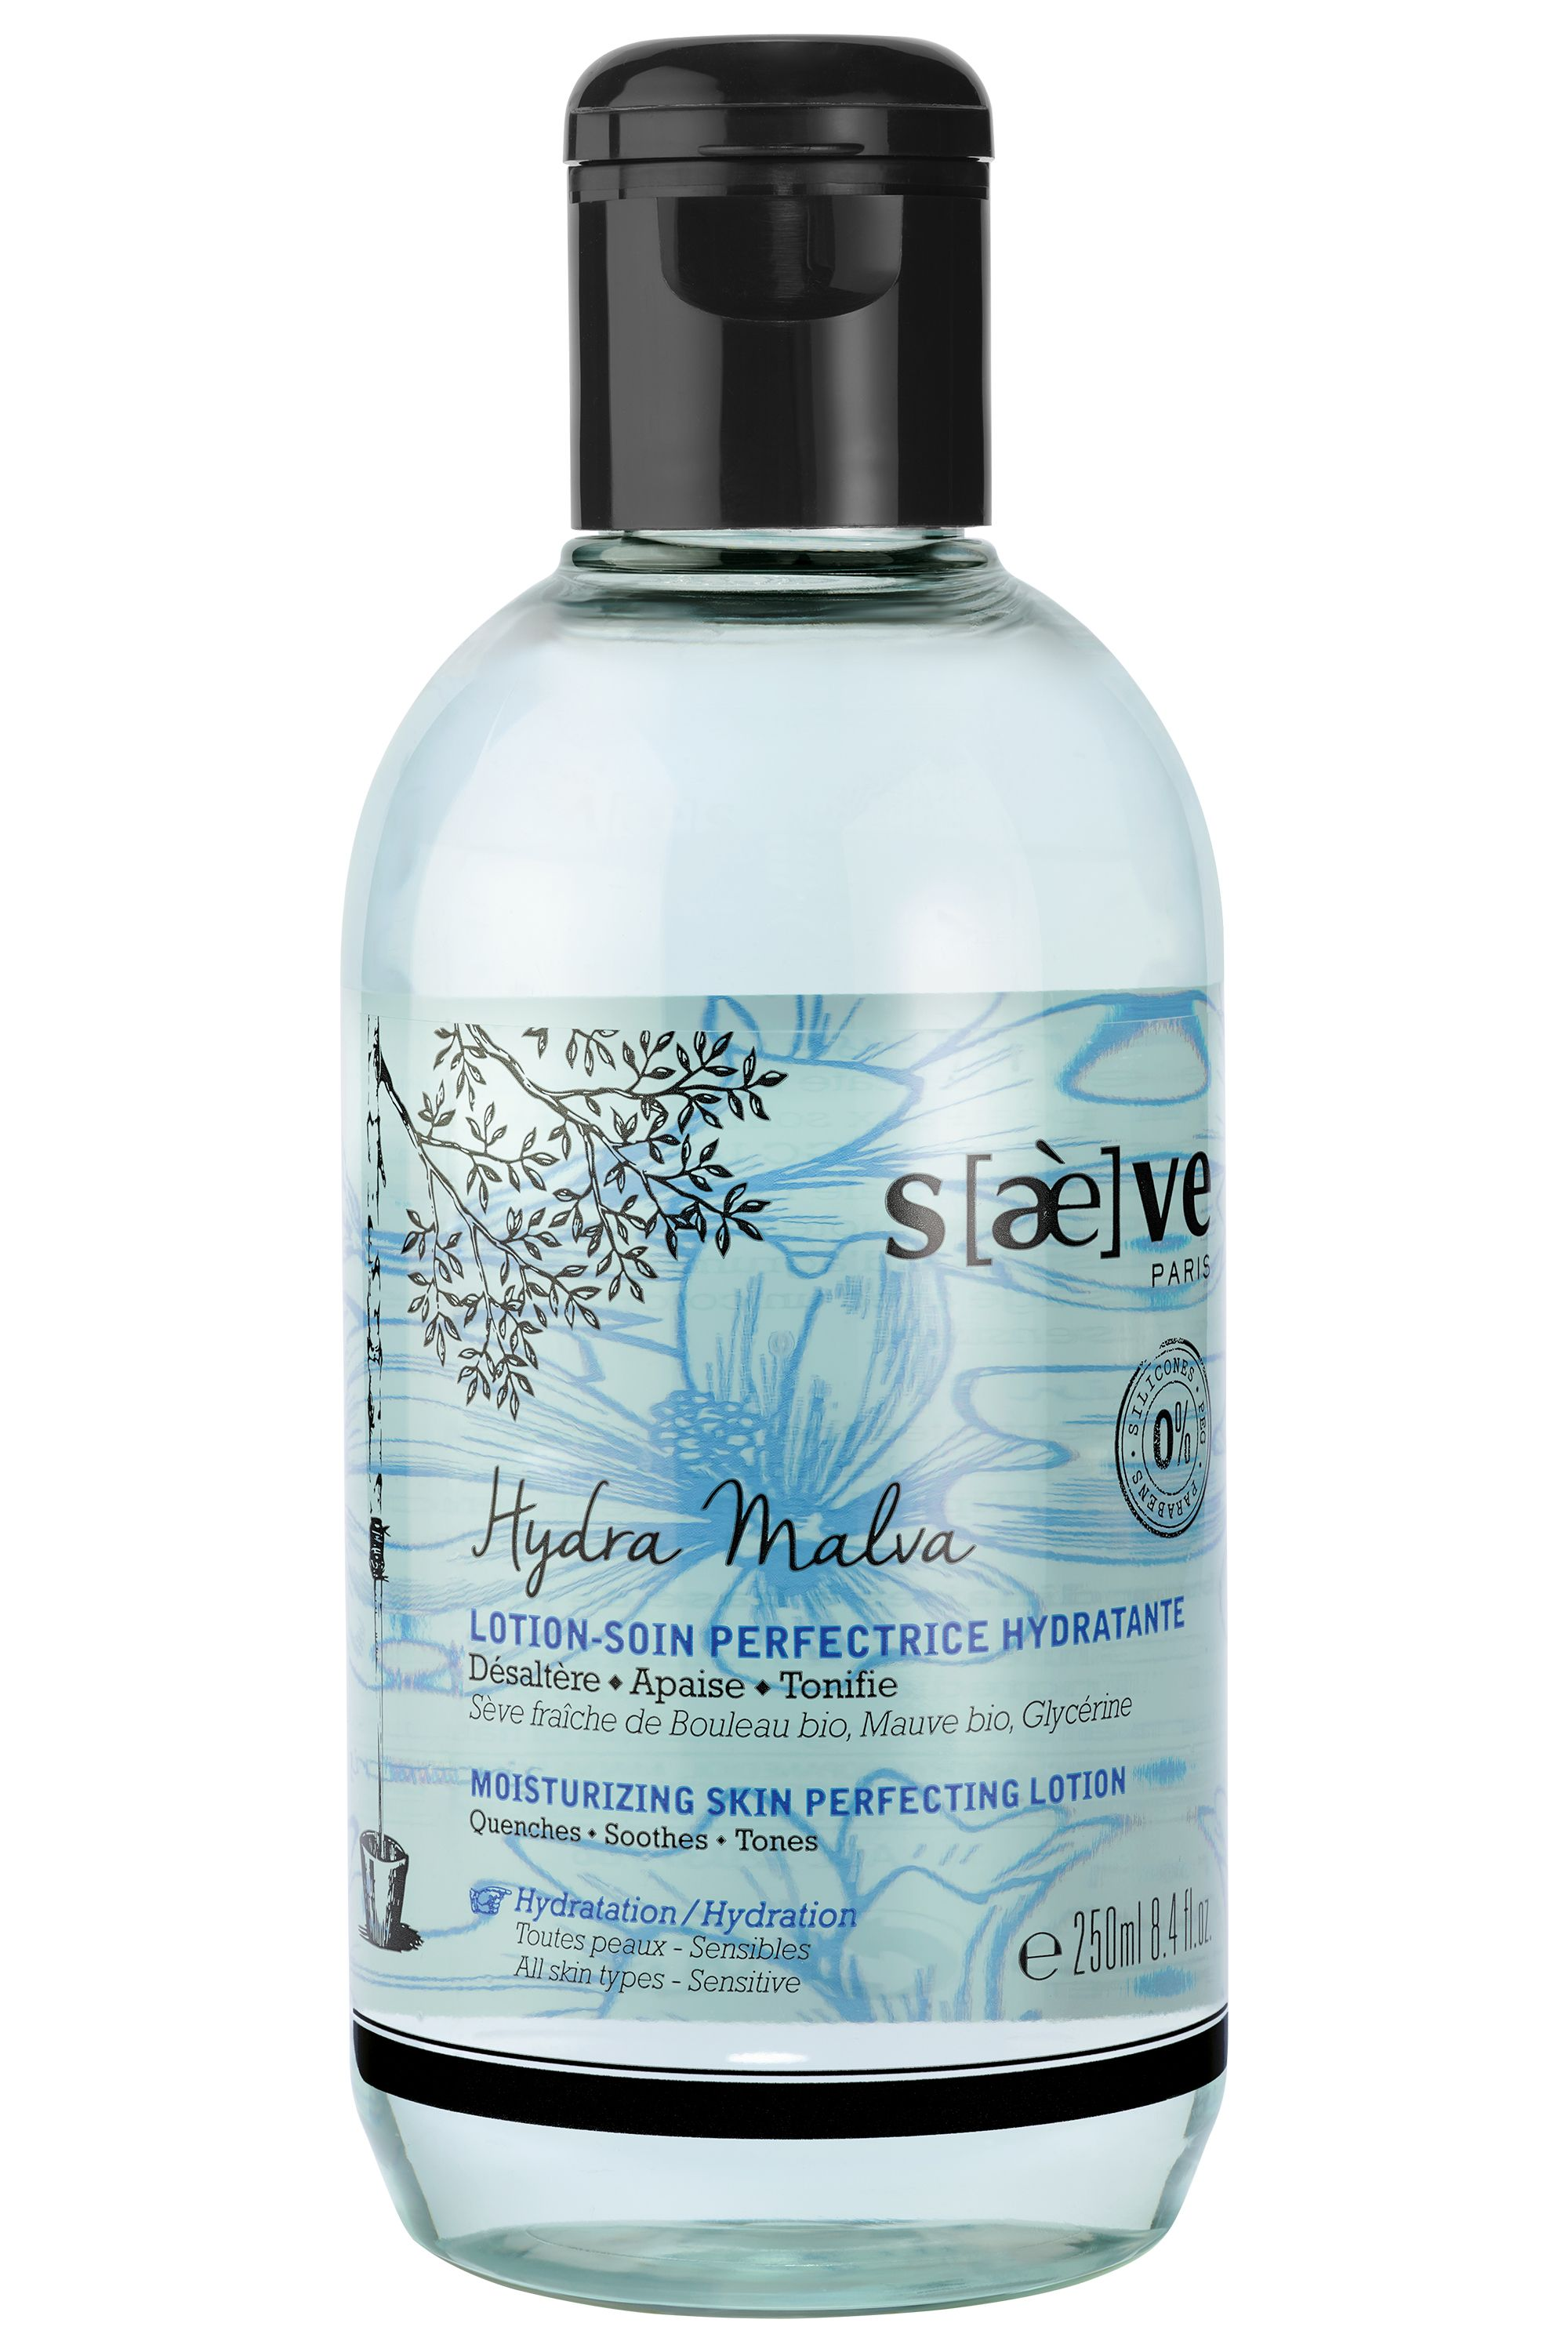 Blissim : Saeve - Lotion-soin perfectrice hydratante Hydra Malva - Lotion-soin perfectrice hydratante Hydra Malva